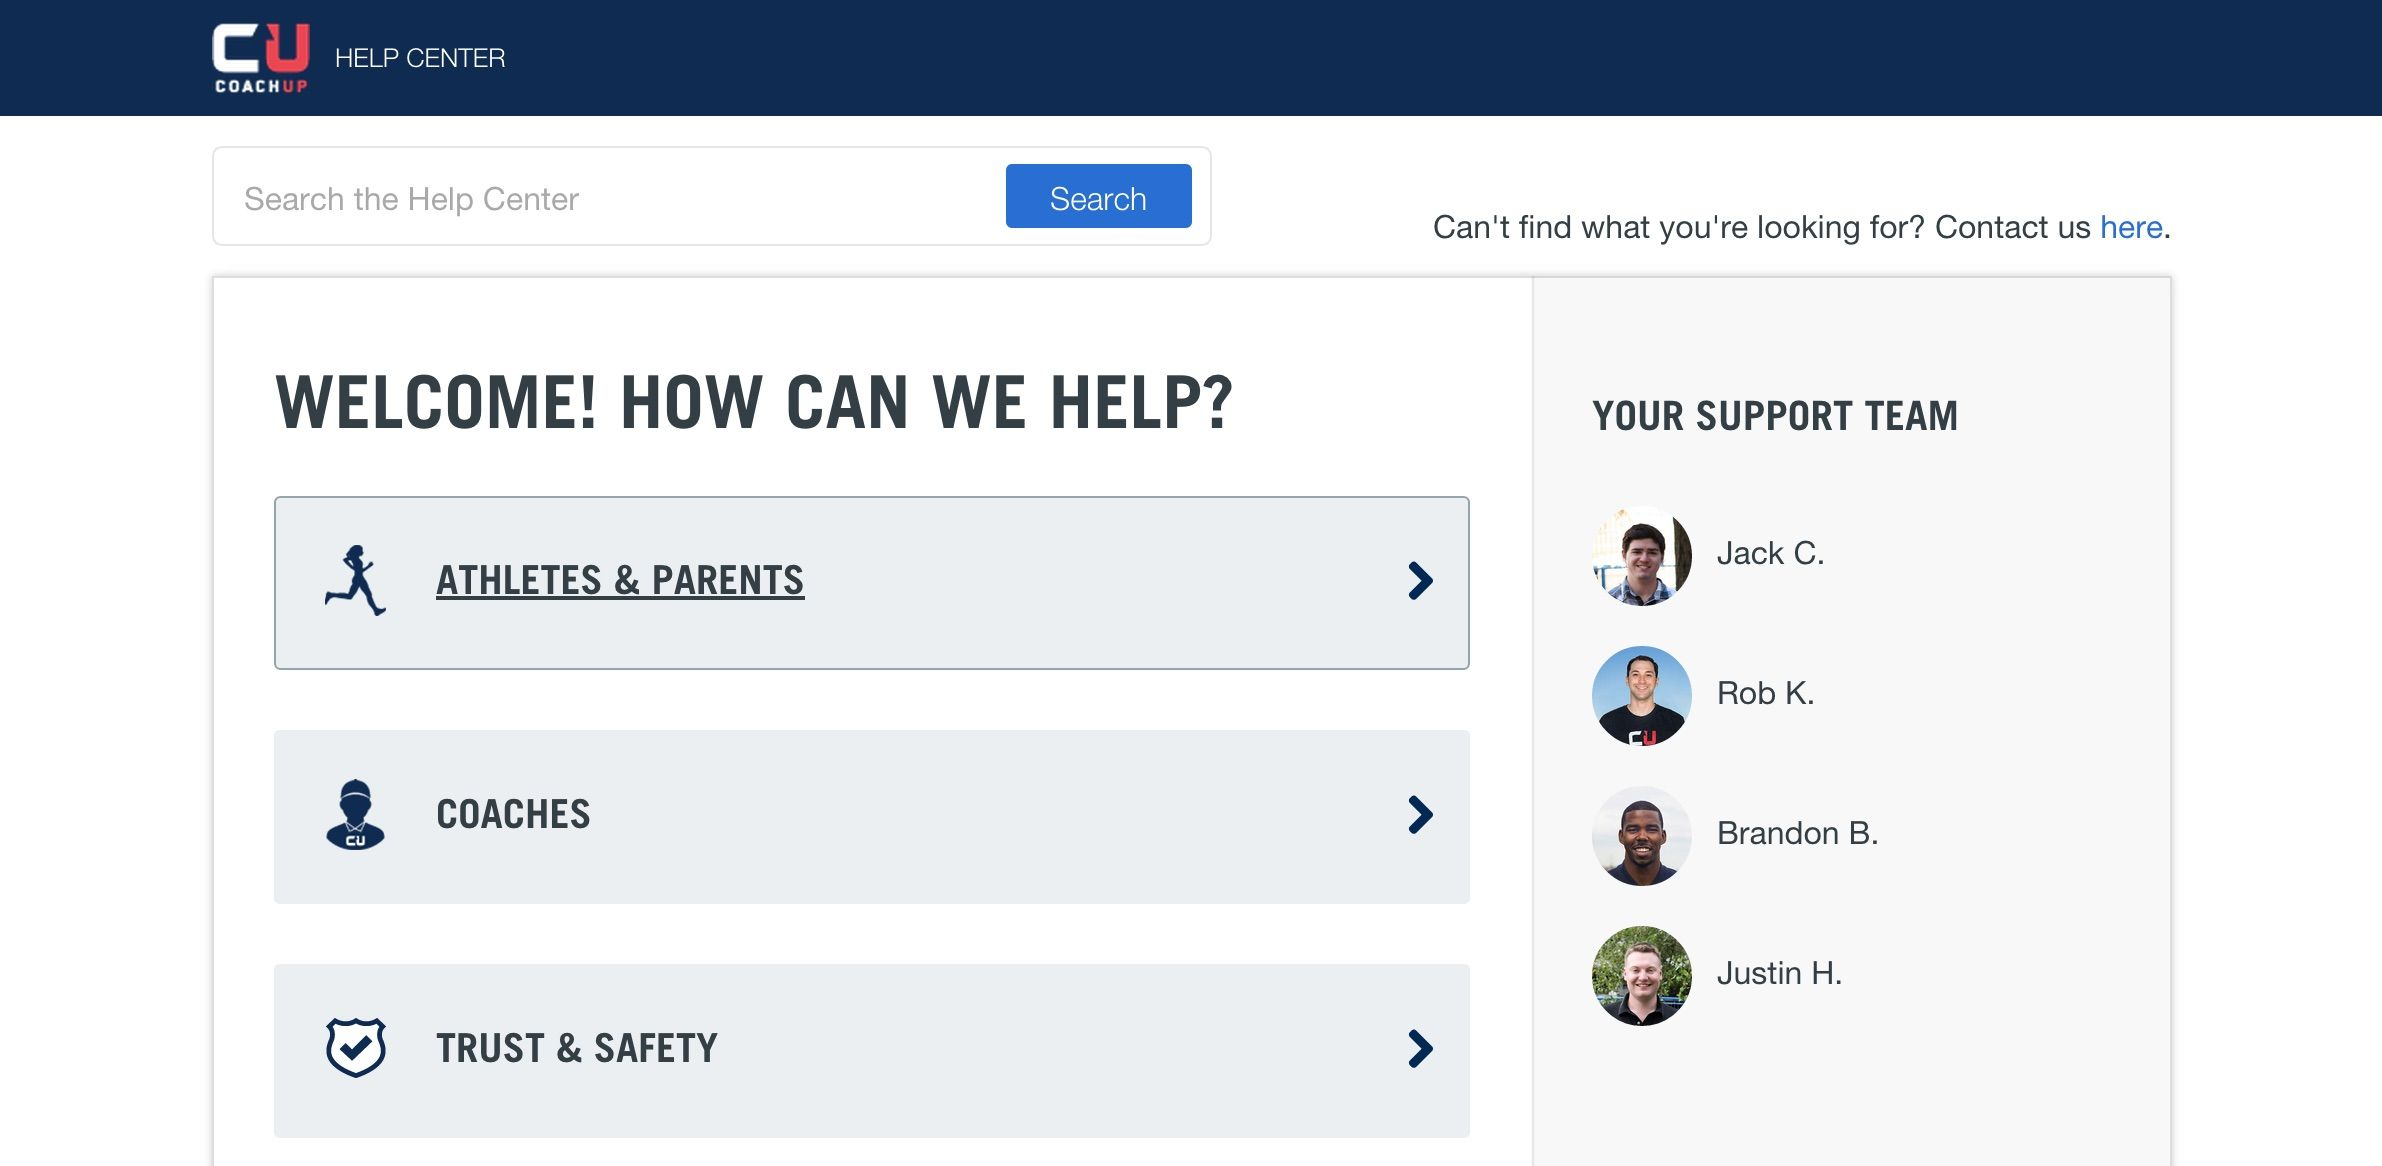 We love how Coach Up's Help Center shows photos of their support team. Simple. Personalized. http://support.coachup.com/hc/en-us